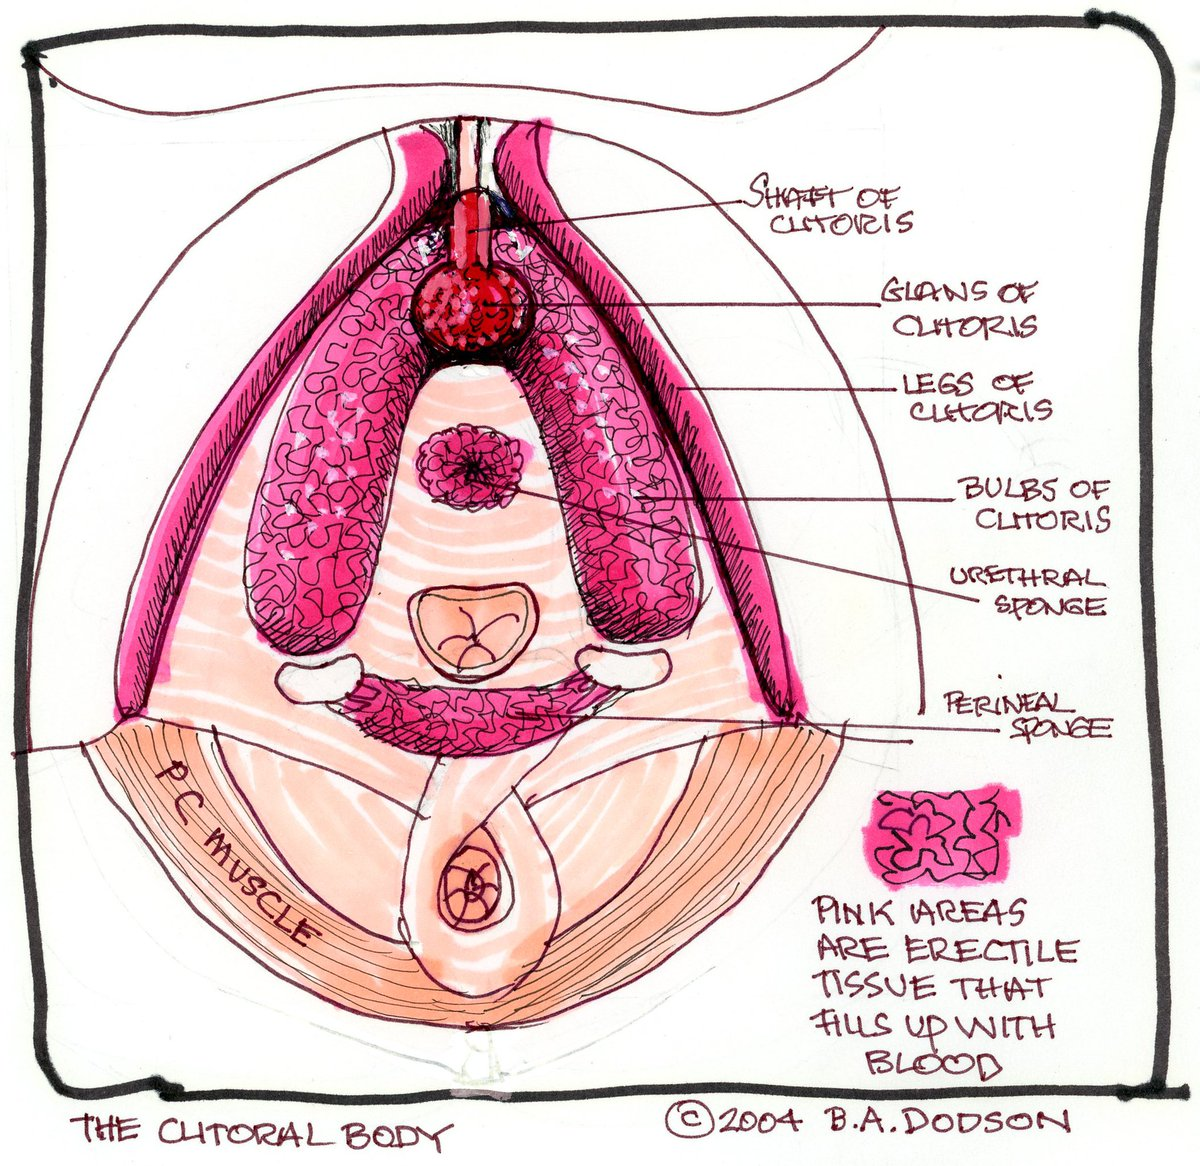 "Were you aware how complex the clitoral system is? Take a look at my 2004 drawing ""The Clitoral Body"" to get a better understanding of what's going on inside your body. #GraySUM2020 pic.twitter.com/Fo8tl9eBsI"